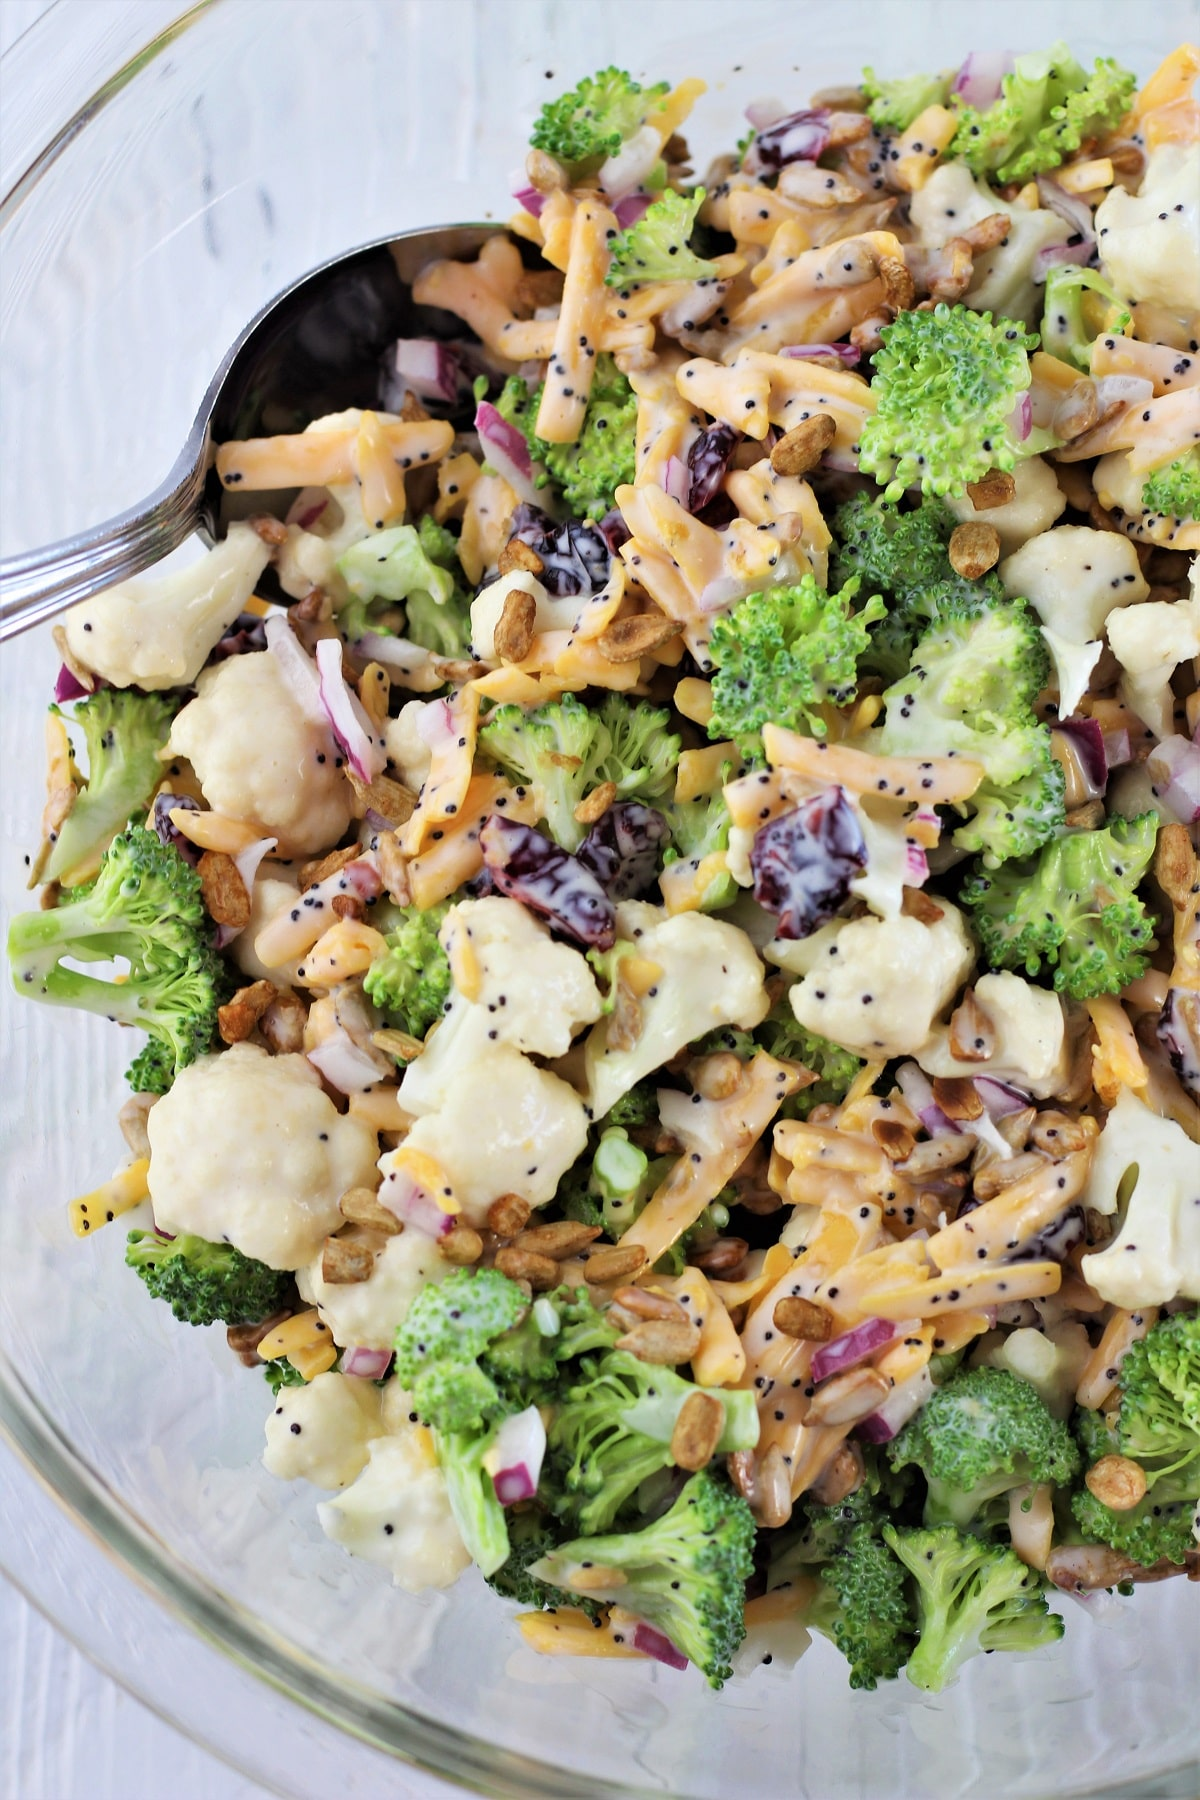 bowl full of broccoli and cauliflower salad with a serving spoon